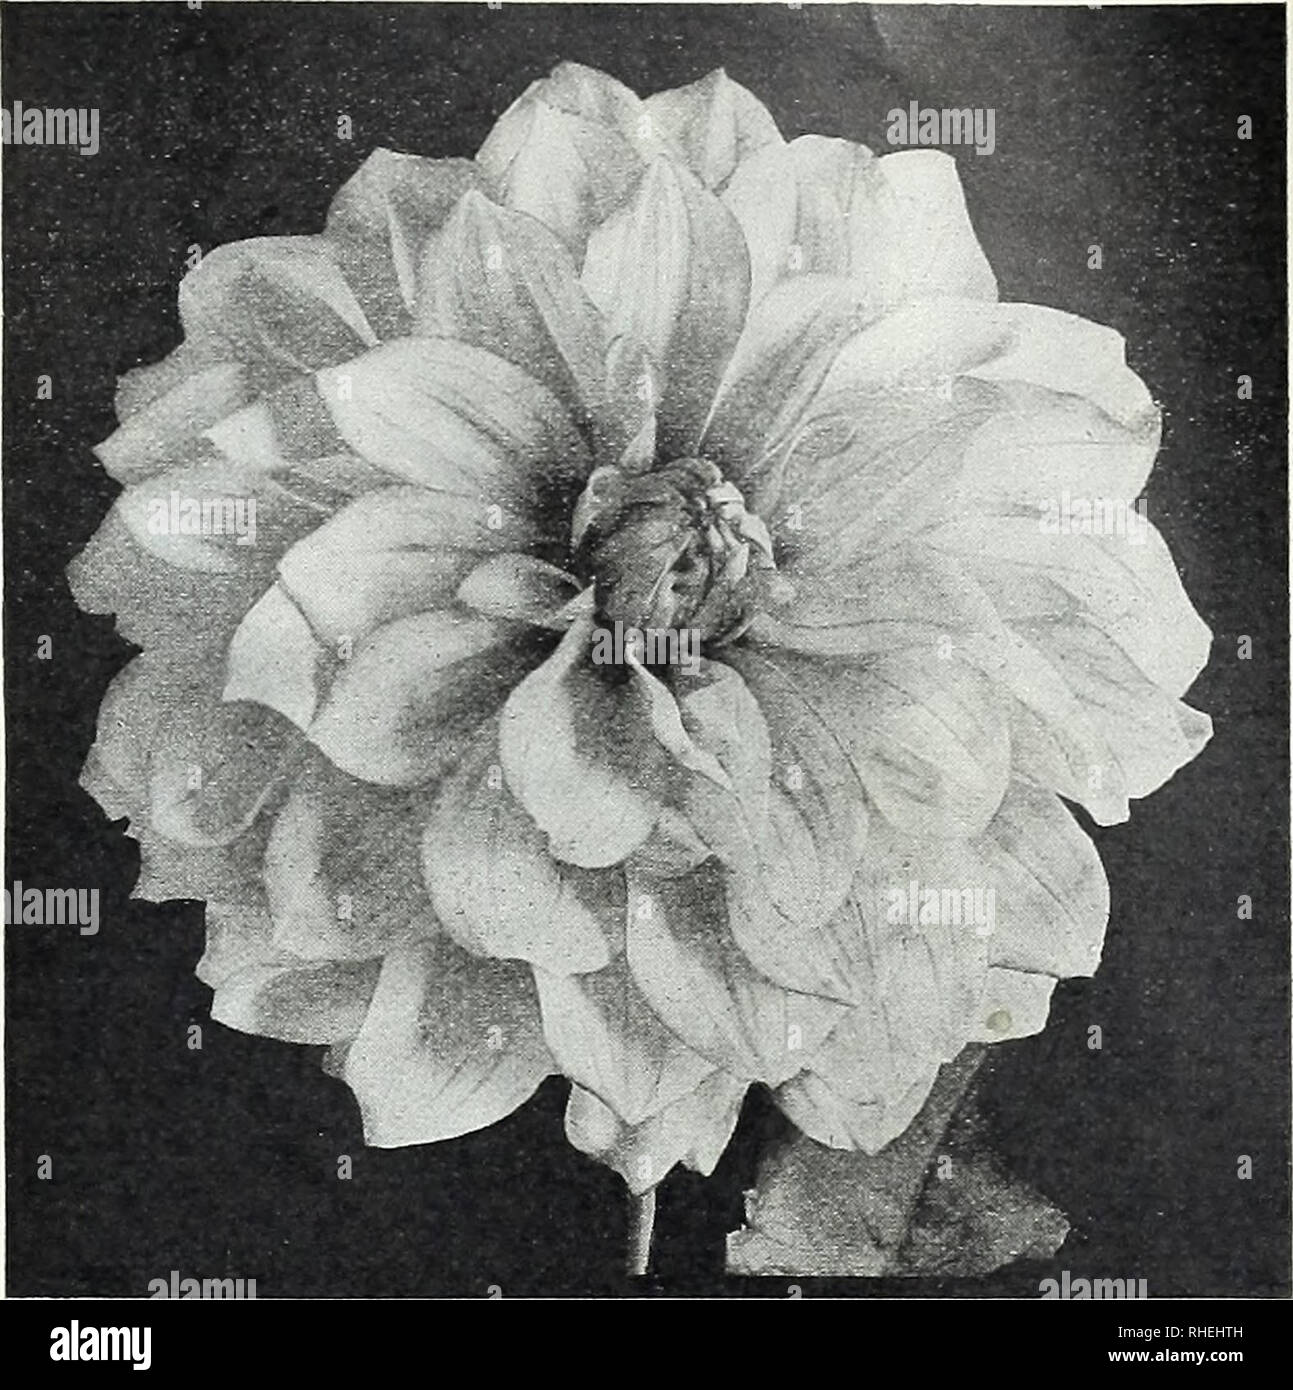 ". Bolgiano's ""prosperity"" tomato. Seeds Maryland Baltimore Catalogs; Vegetables Maryland Baltimore Catalogs; Flowers Maryland Baltimore Catalogs; Fruit Maryland Baltimore Catalogs; Grasses Maryland Baltimore Catalogs; Gardening Maryland Baltimore Equipment and supplies Catalogs; Nurseries (Horticulture) Maryland Baltimore Catalogs. Bolgiano's Dahlia Roots For 1913 61 Dahlias Containing All The Most Recent Introductions of Both Europe and America We will sell 6 at Dozen rate. Any 215c-DahliasforZ5c. Add 8c per root if to go by mail. Important. We supply undivided Field-Grown ""Clu - Stock Image"